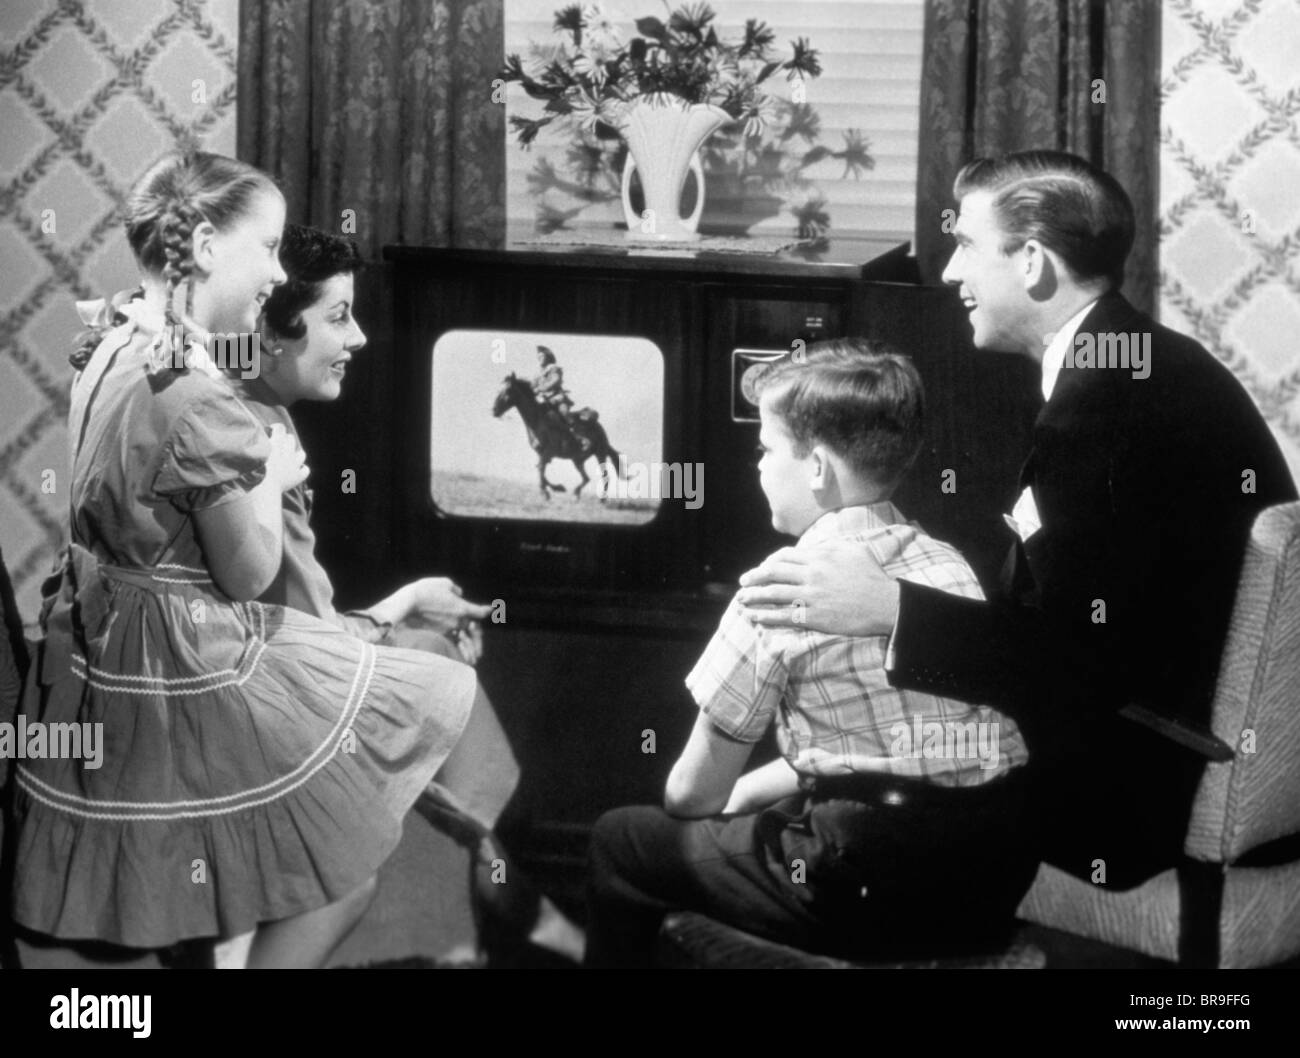 1950s FAMILY OF FOUR WATCHING BLACK AND WHITE TELEVISION PROGRAM OF A COWBOY RIDING A HORSE - Stock Image